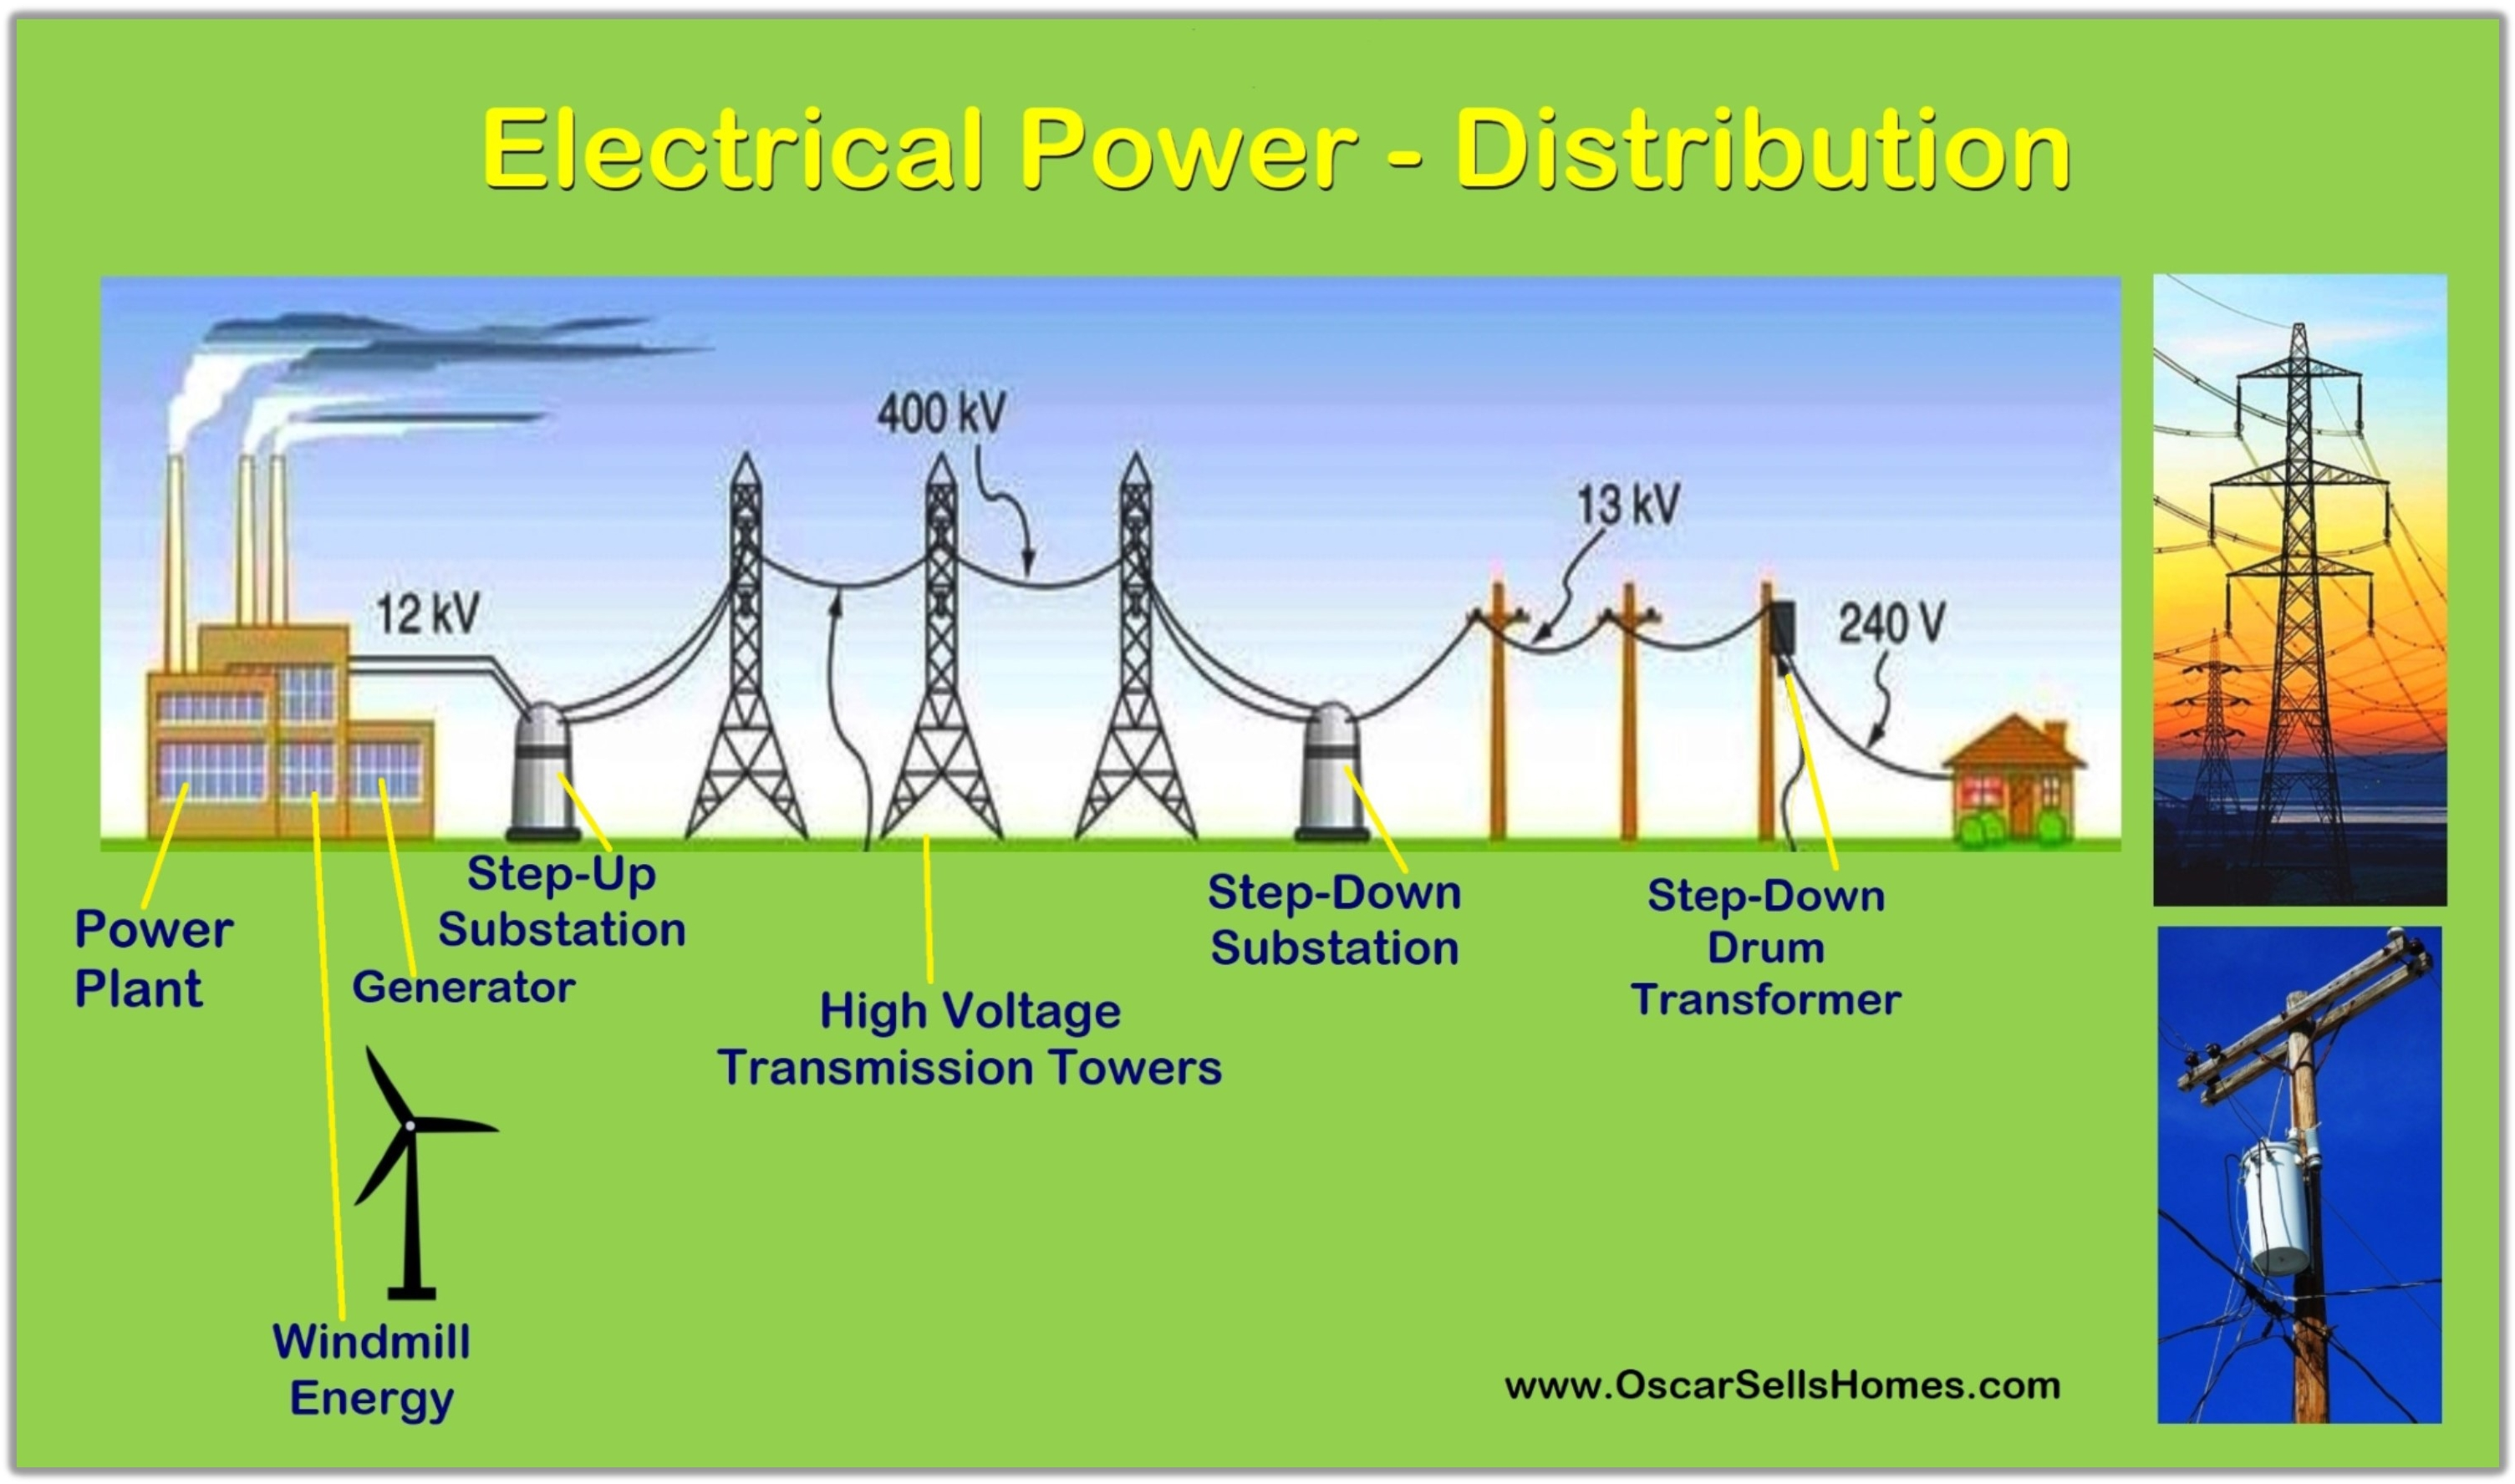 Electrical Power Distribution Residential 240 Volt Generator Wiring Diagrams Oscar Castillo Broker Associate 858 775 1057